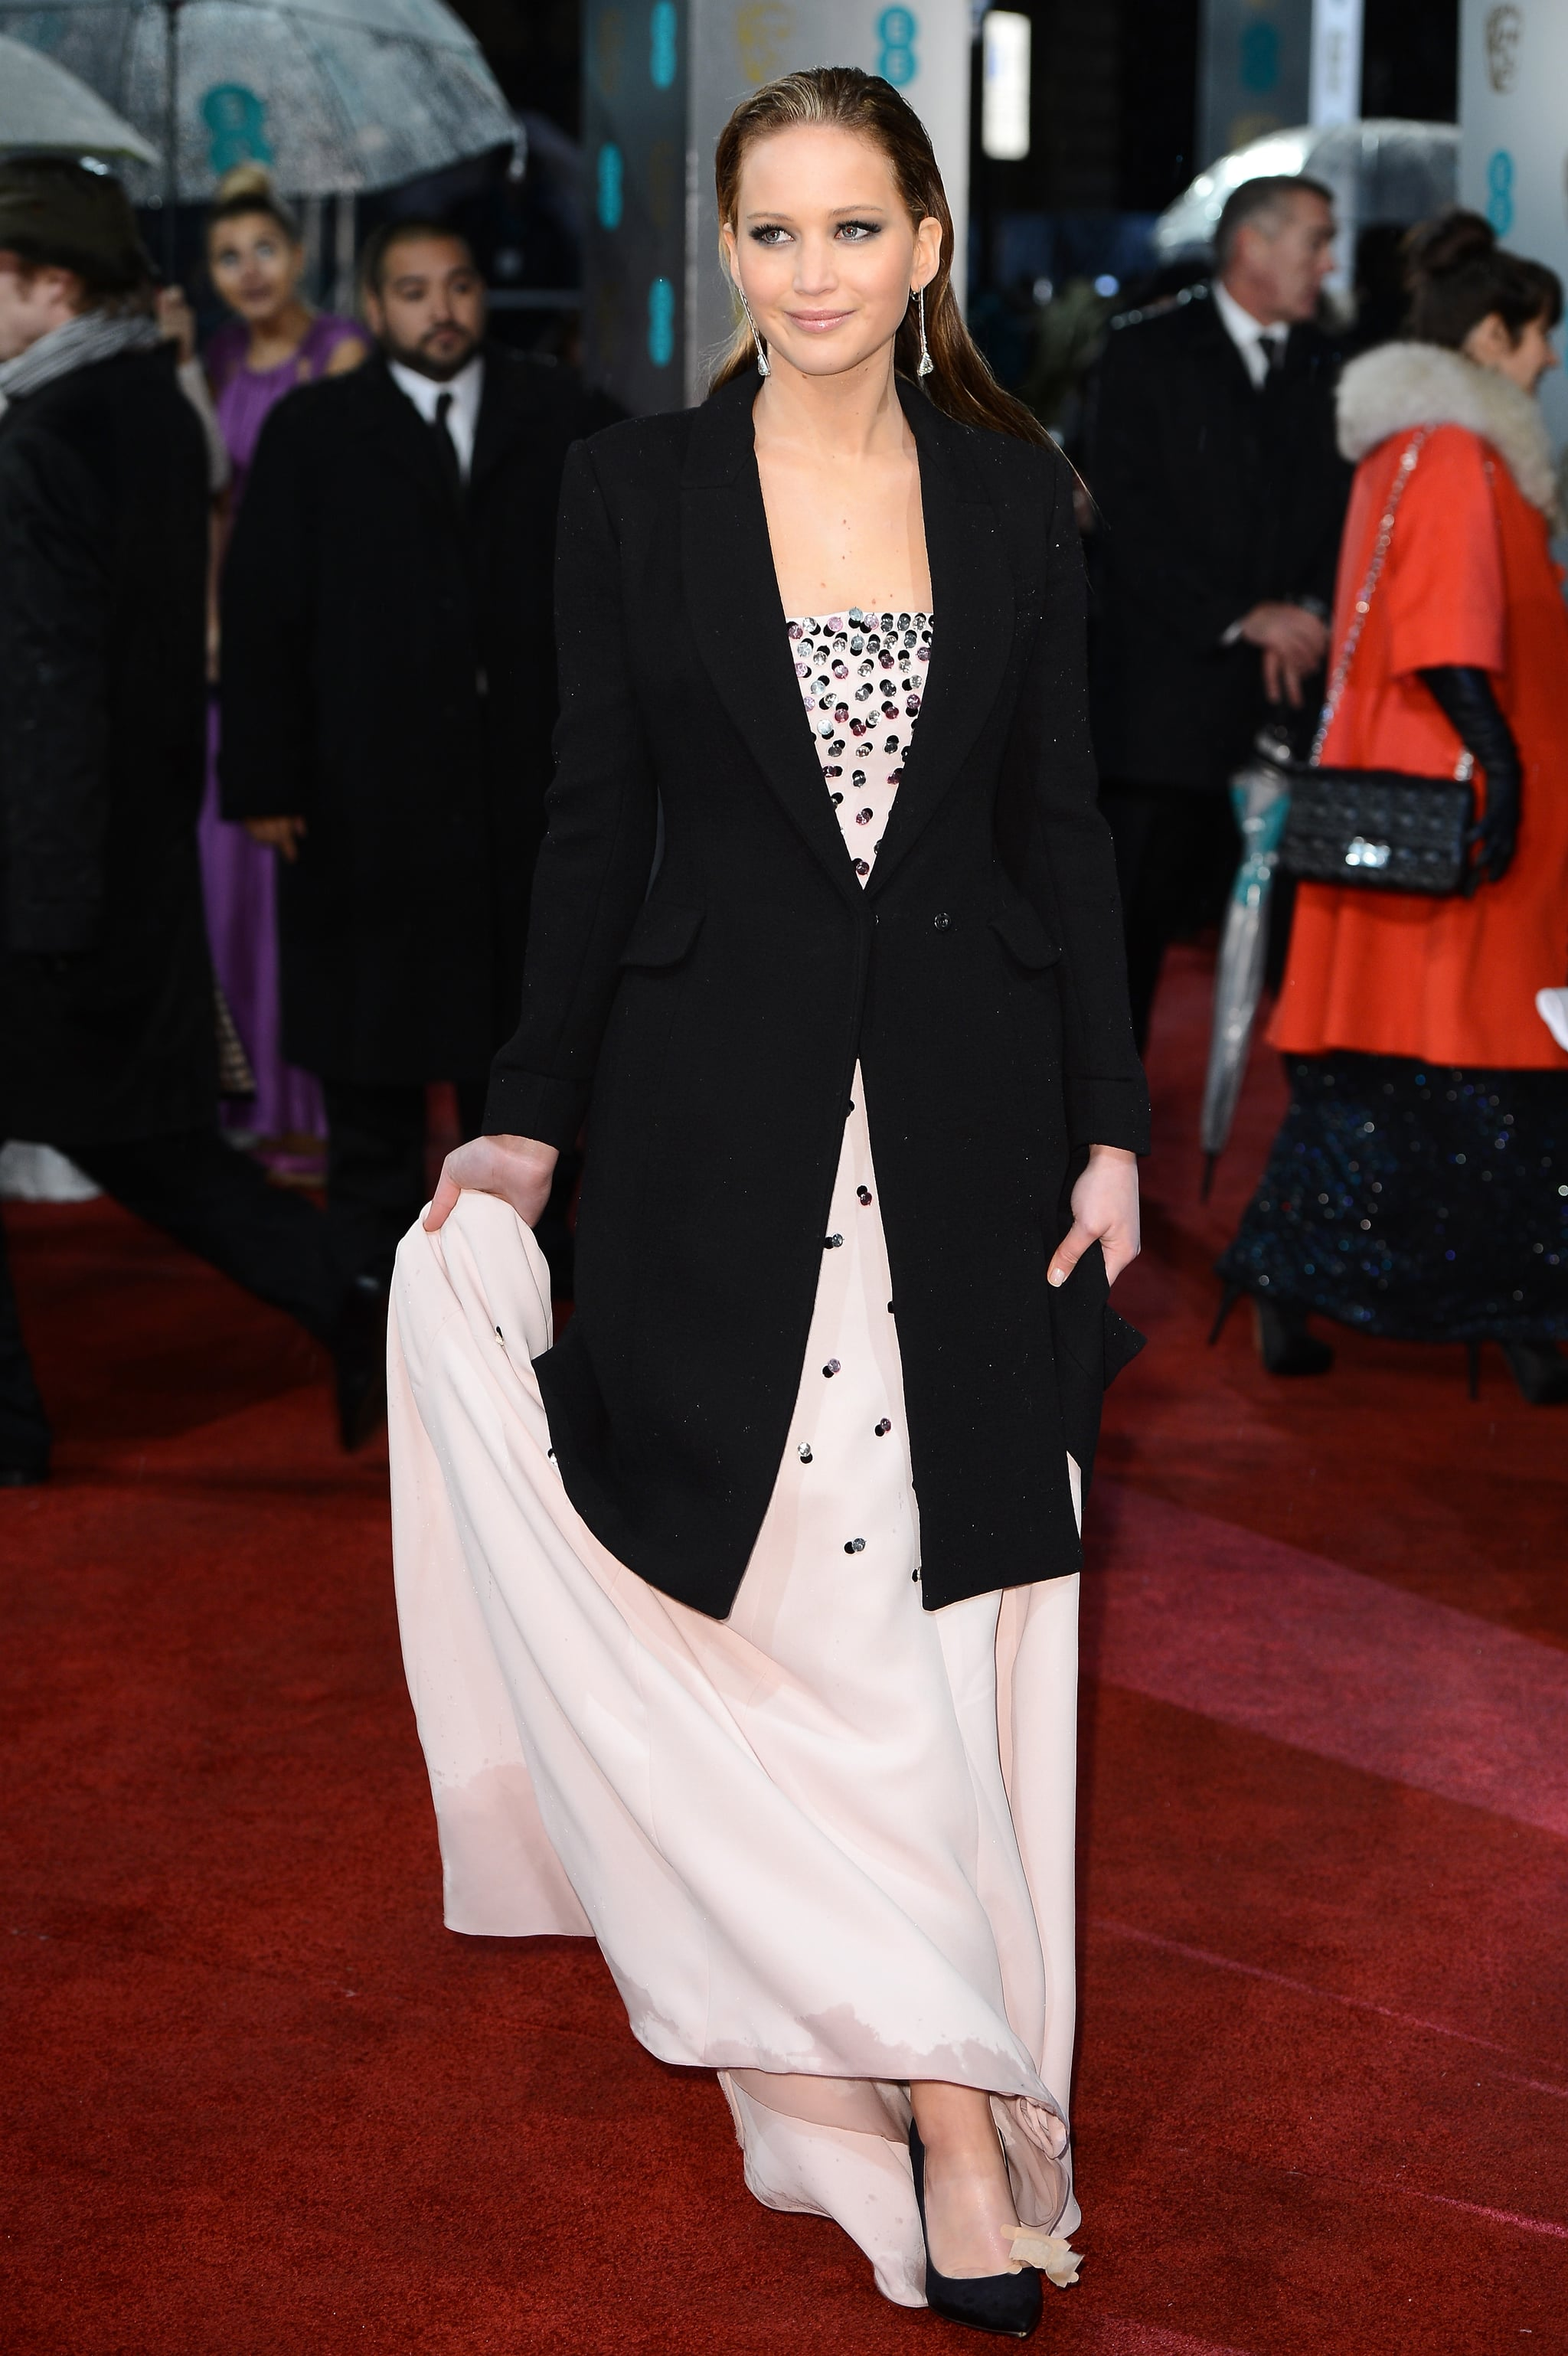 Jennifer Lawrence Wows in Sexy Dior Haute Couture at BAFTAs